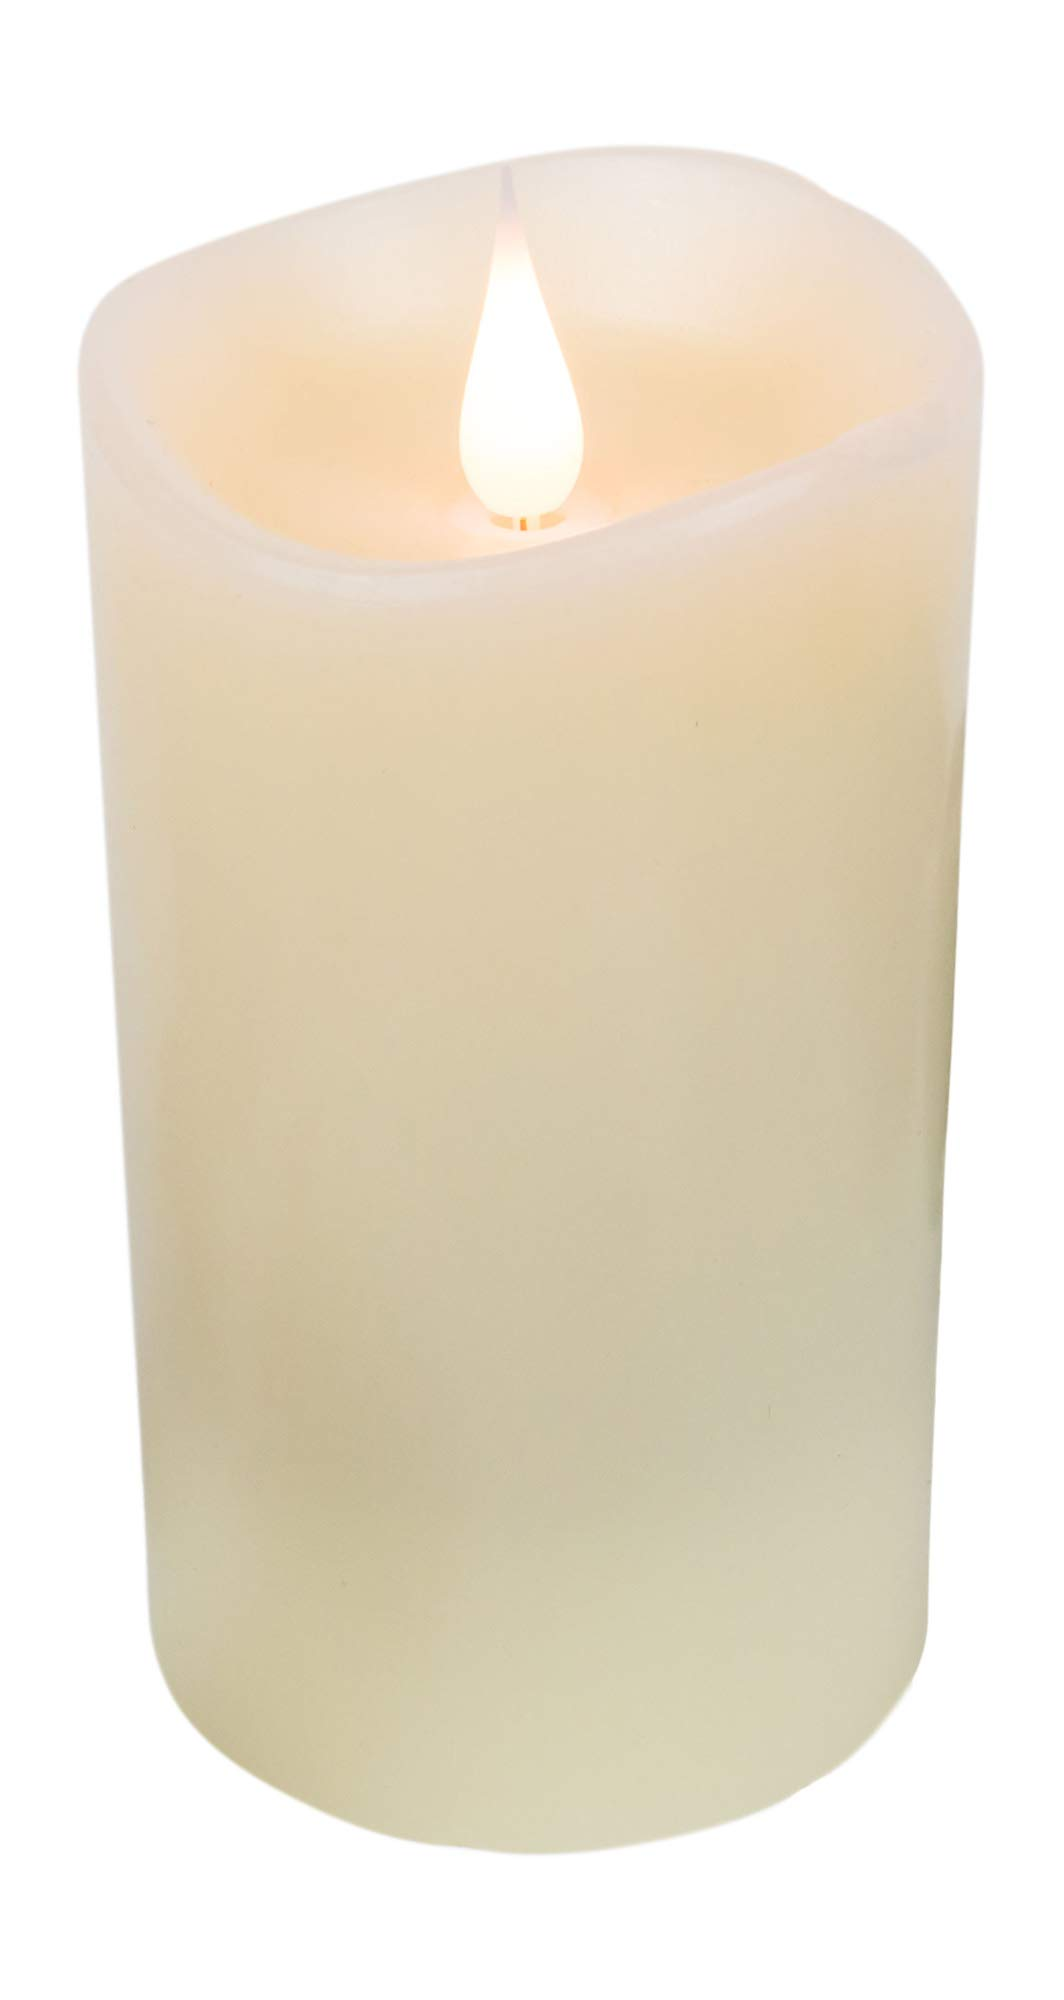 FLAMELESS CANDLES with Realistic Flickering Flame - Authentic Candle Light for a Relaxing, Beautiful home; Real Wax Pillar with Timer, Battery Operated LED, Unscented, Ivory White, 3x5''